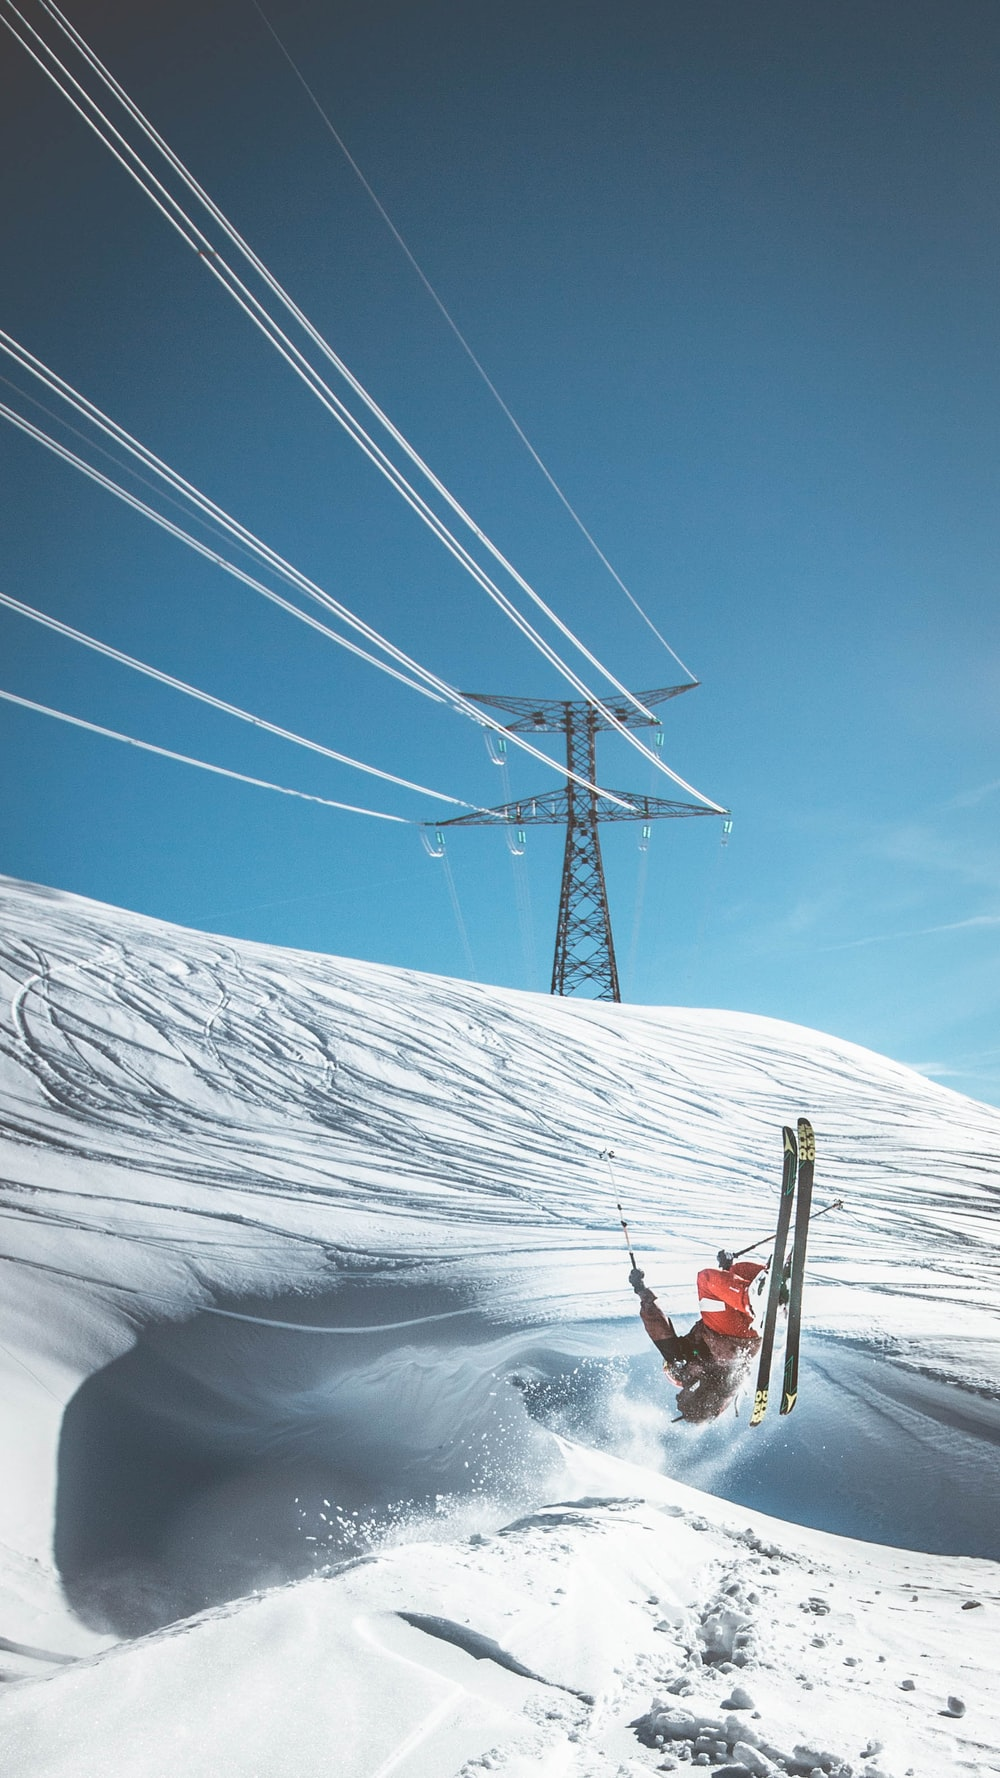 man skiing on snow near electric tower